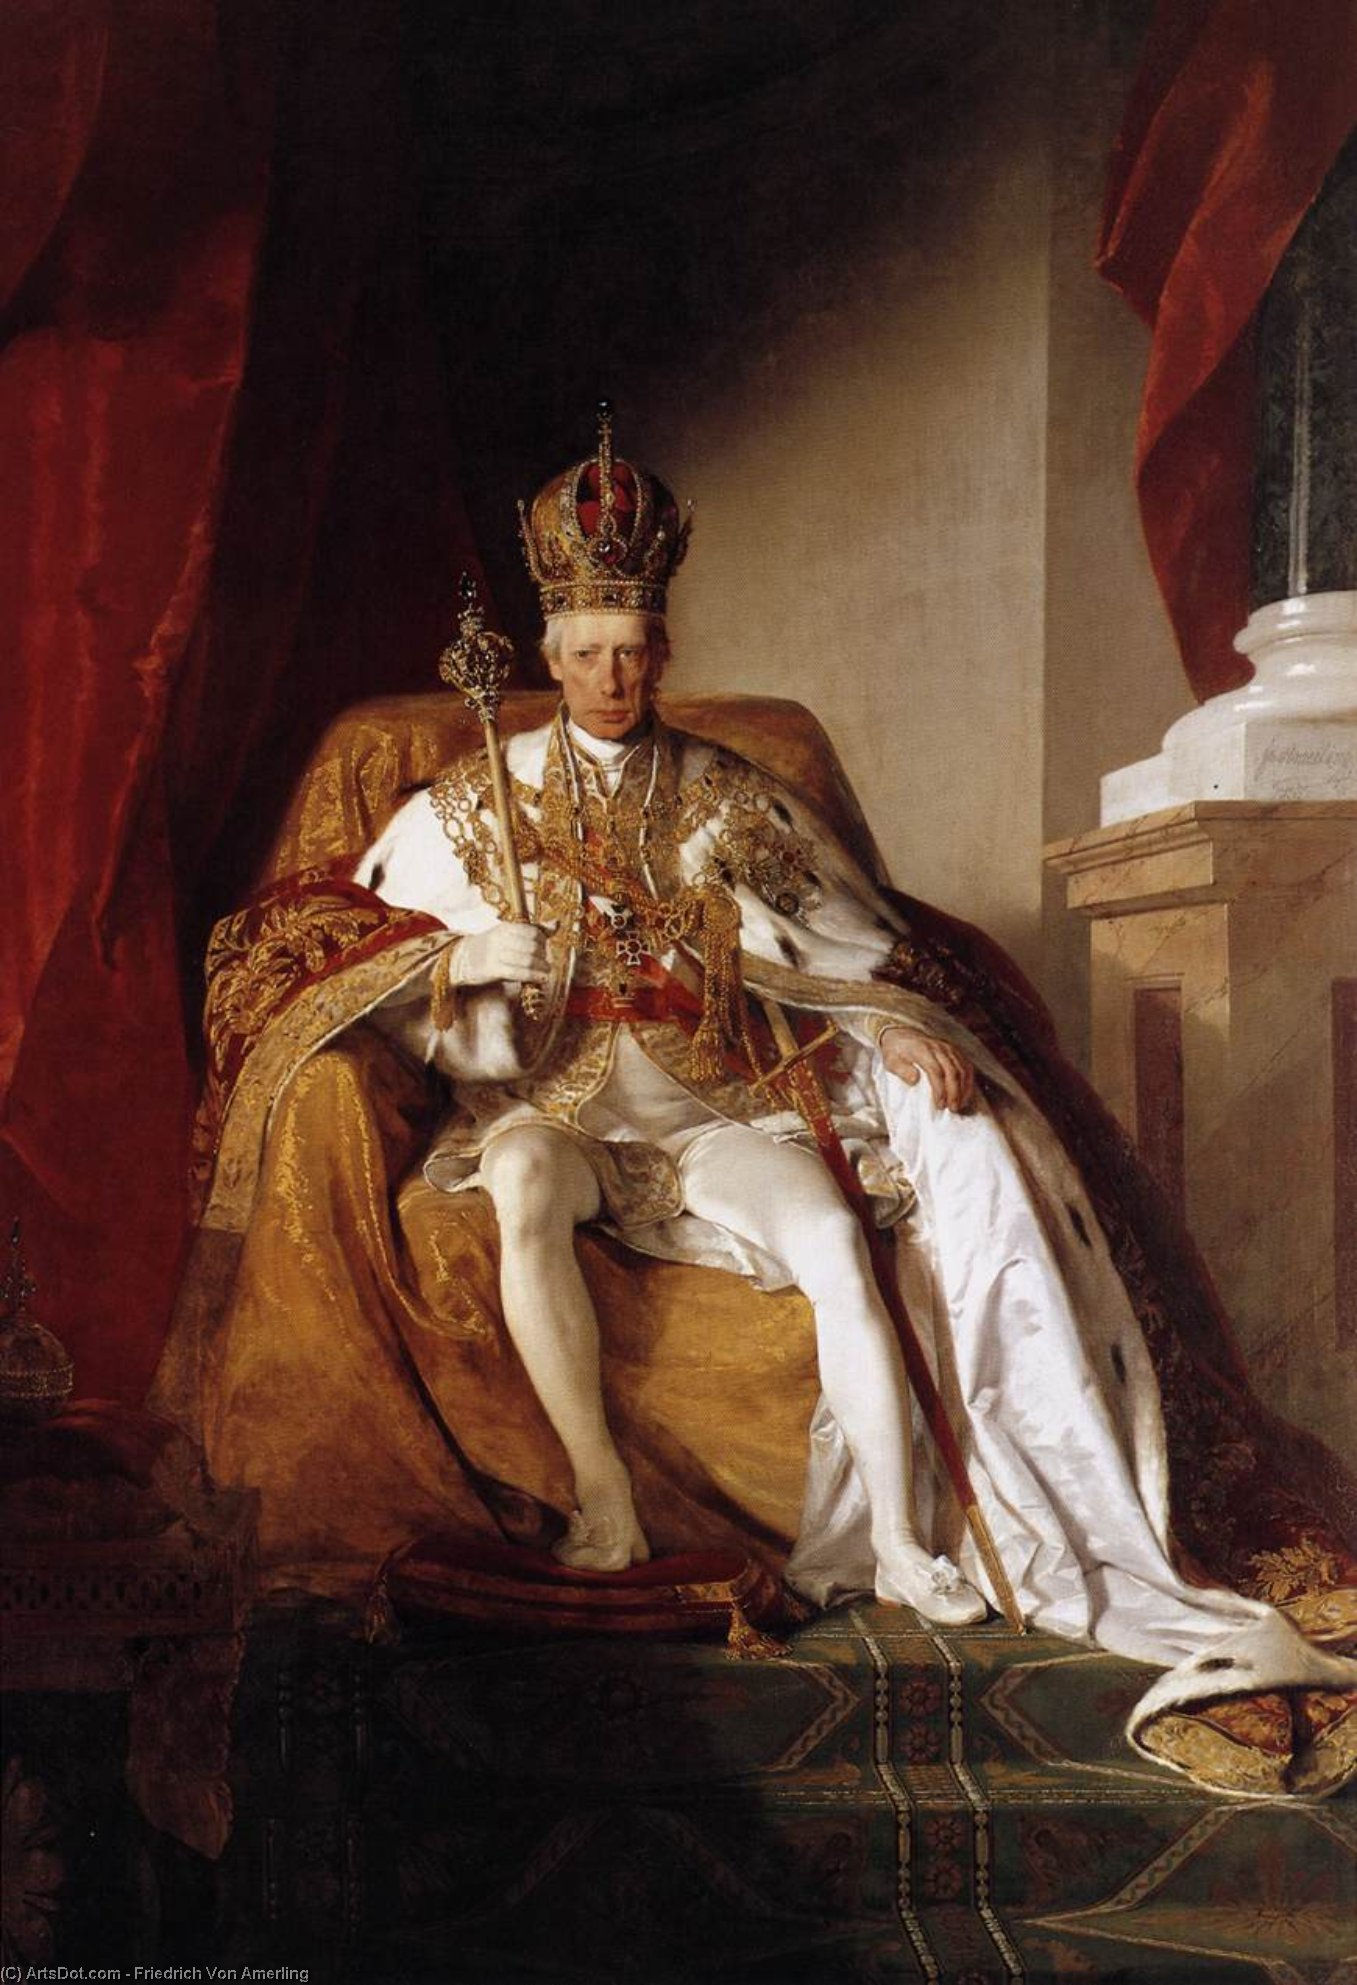 Emperor Franz I of Austria in his Coronation Robes, Oil On Canvas by Friedrich Ritter Von Amerling (1803-1887)